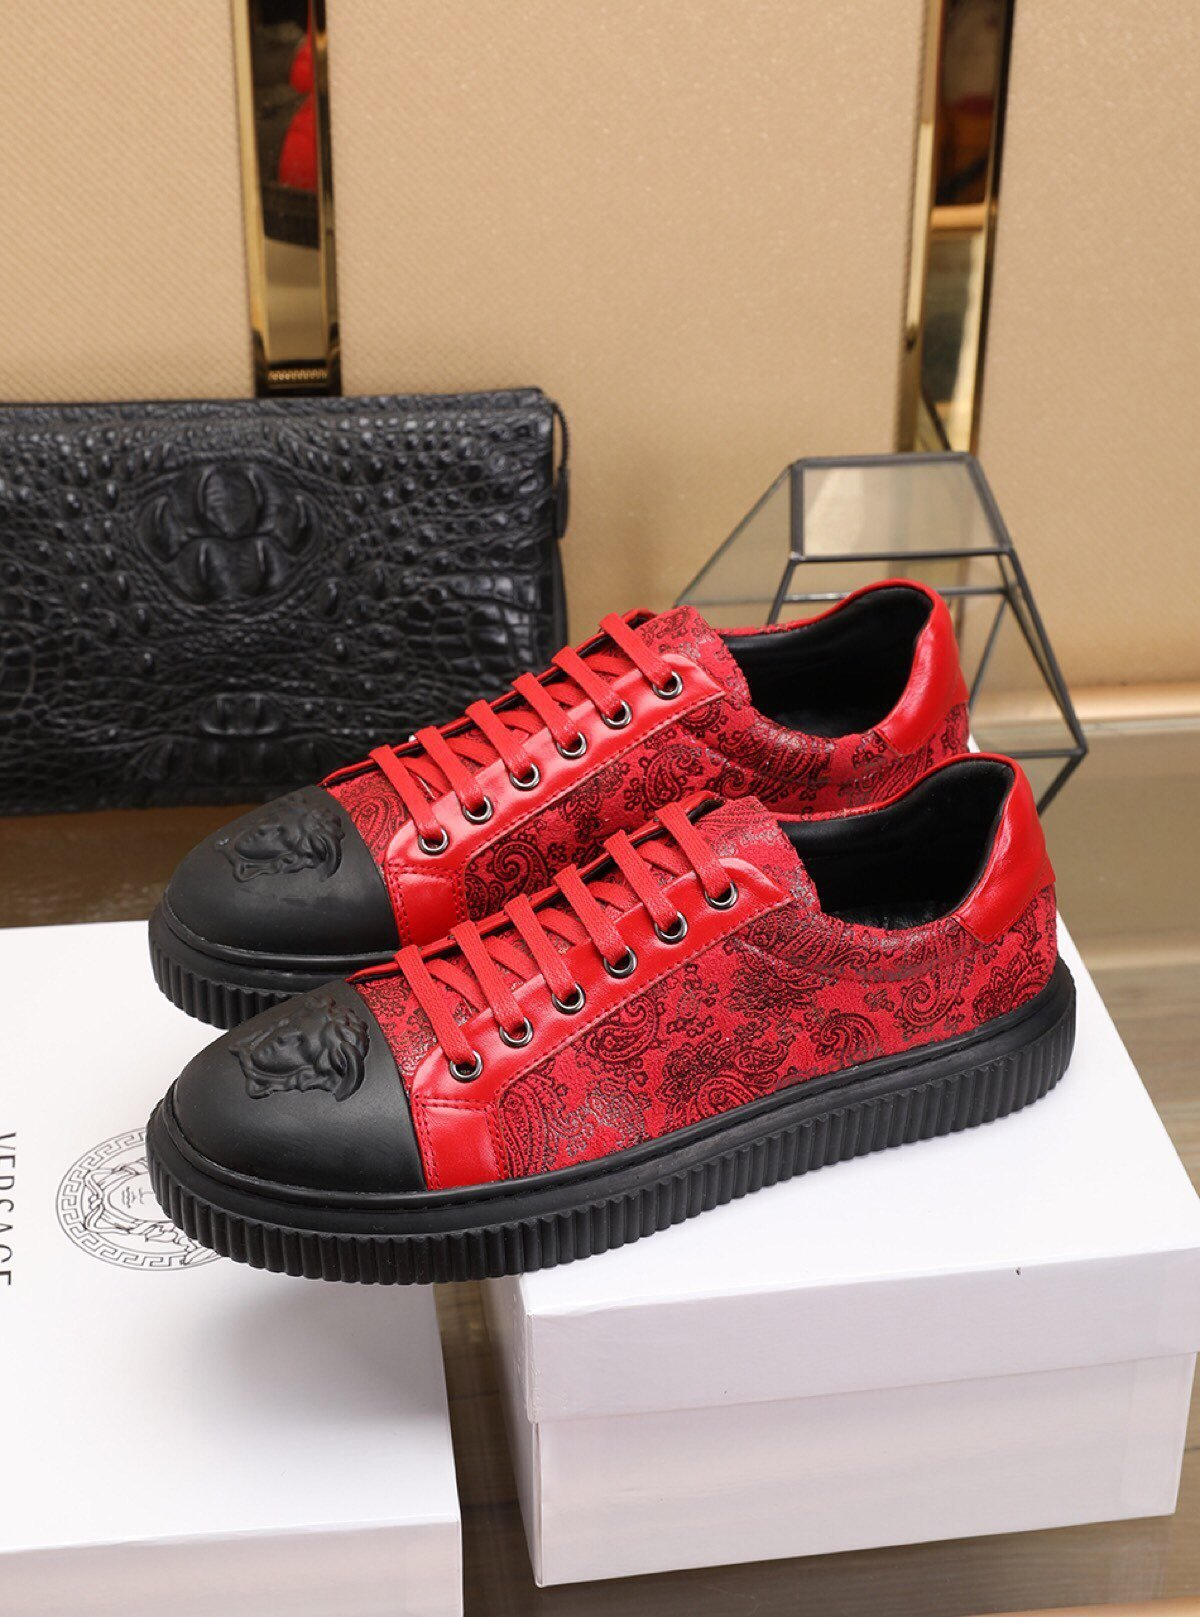 Image of Versace Men's Leather Fashion Low Top Sneakers Shoes